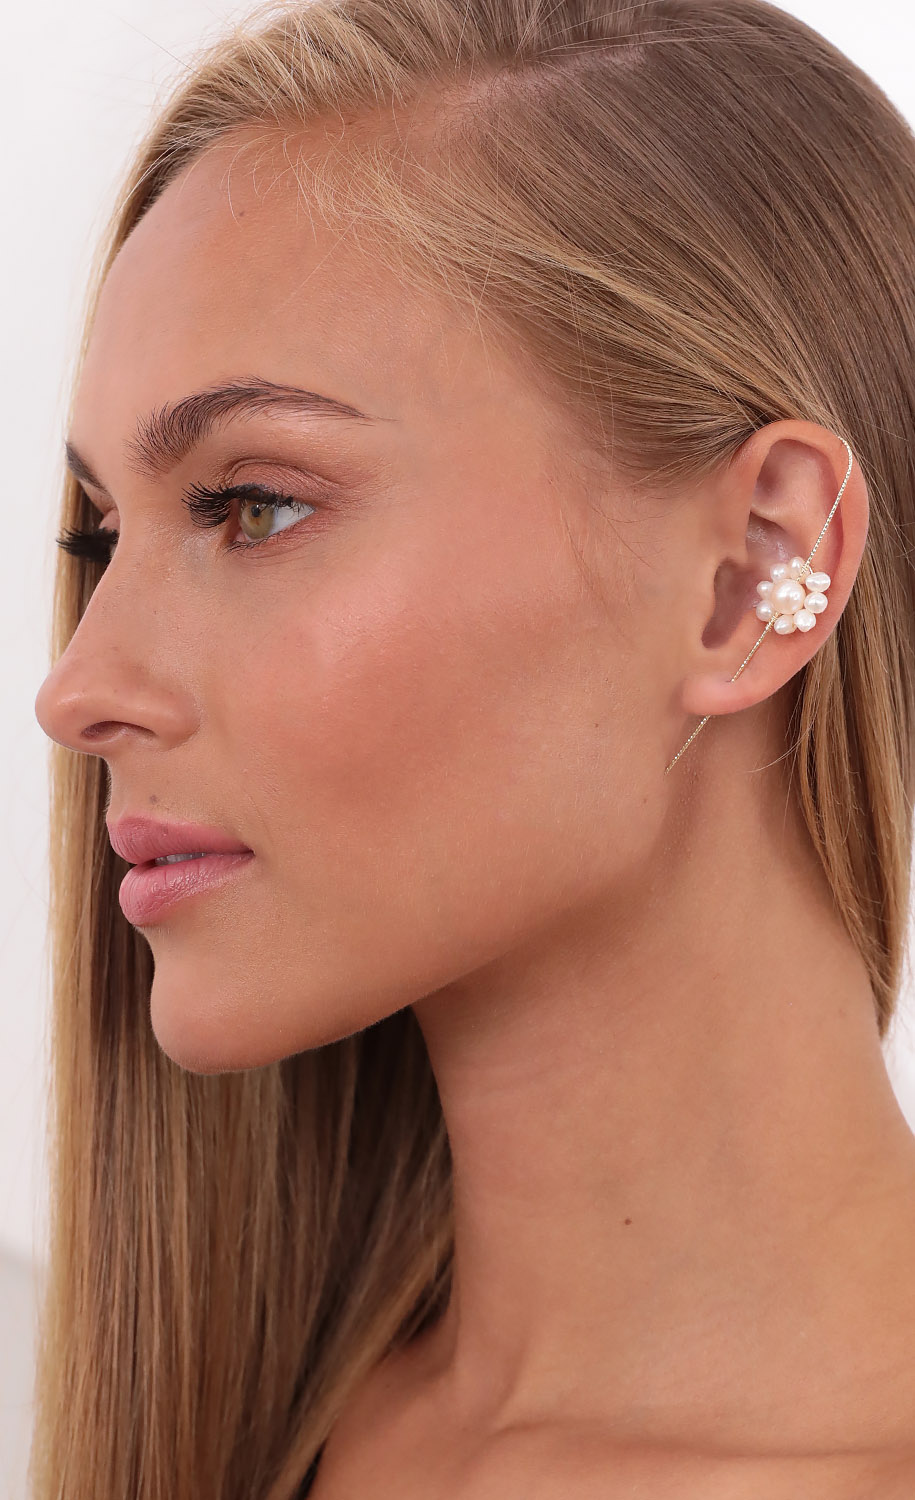 Blossoming Pearl Ear Cuff